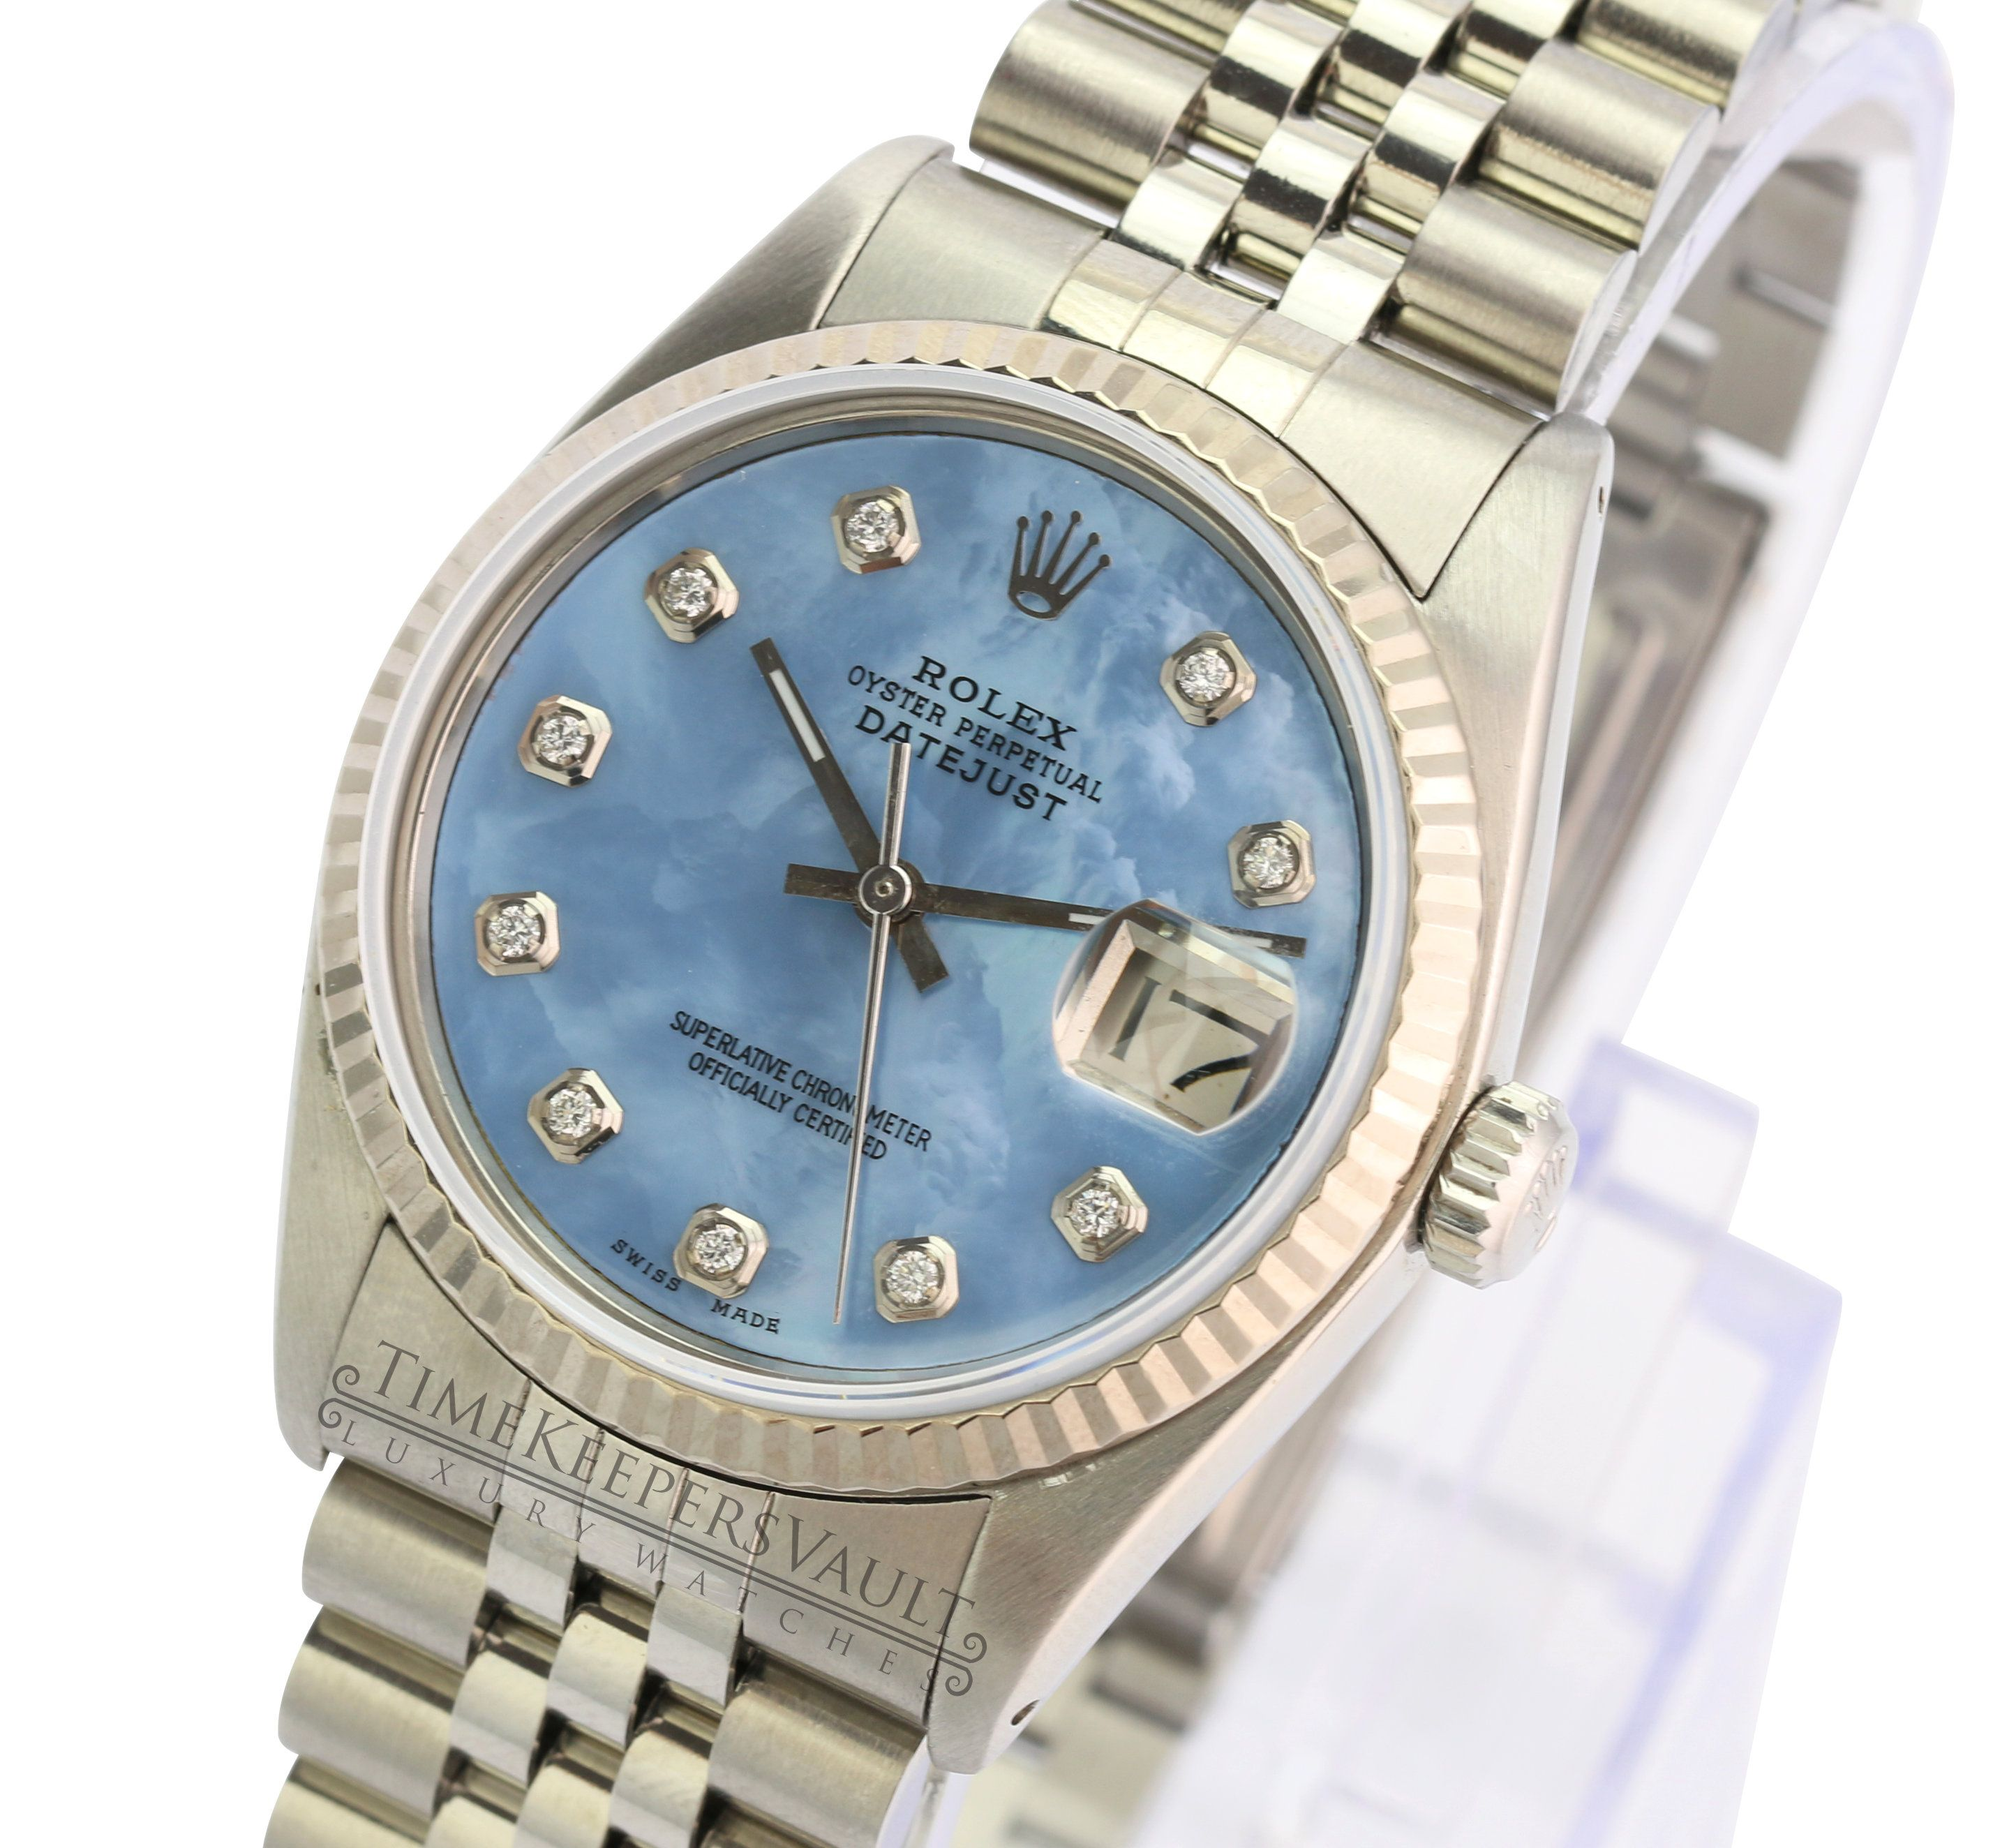 Rolex Datejust Unisex 16234 Stainless steel Blue MOP Dial Engine Turned Jubilee Band 36mm-Quickset #stainlesssteelrolex